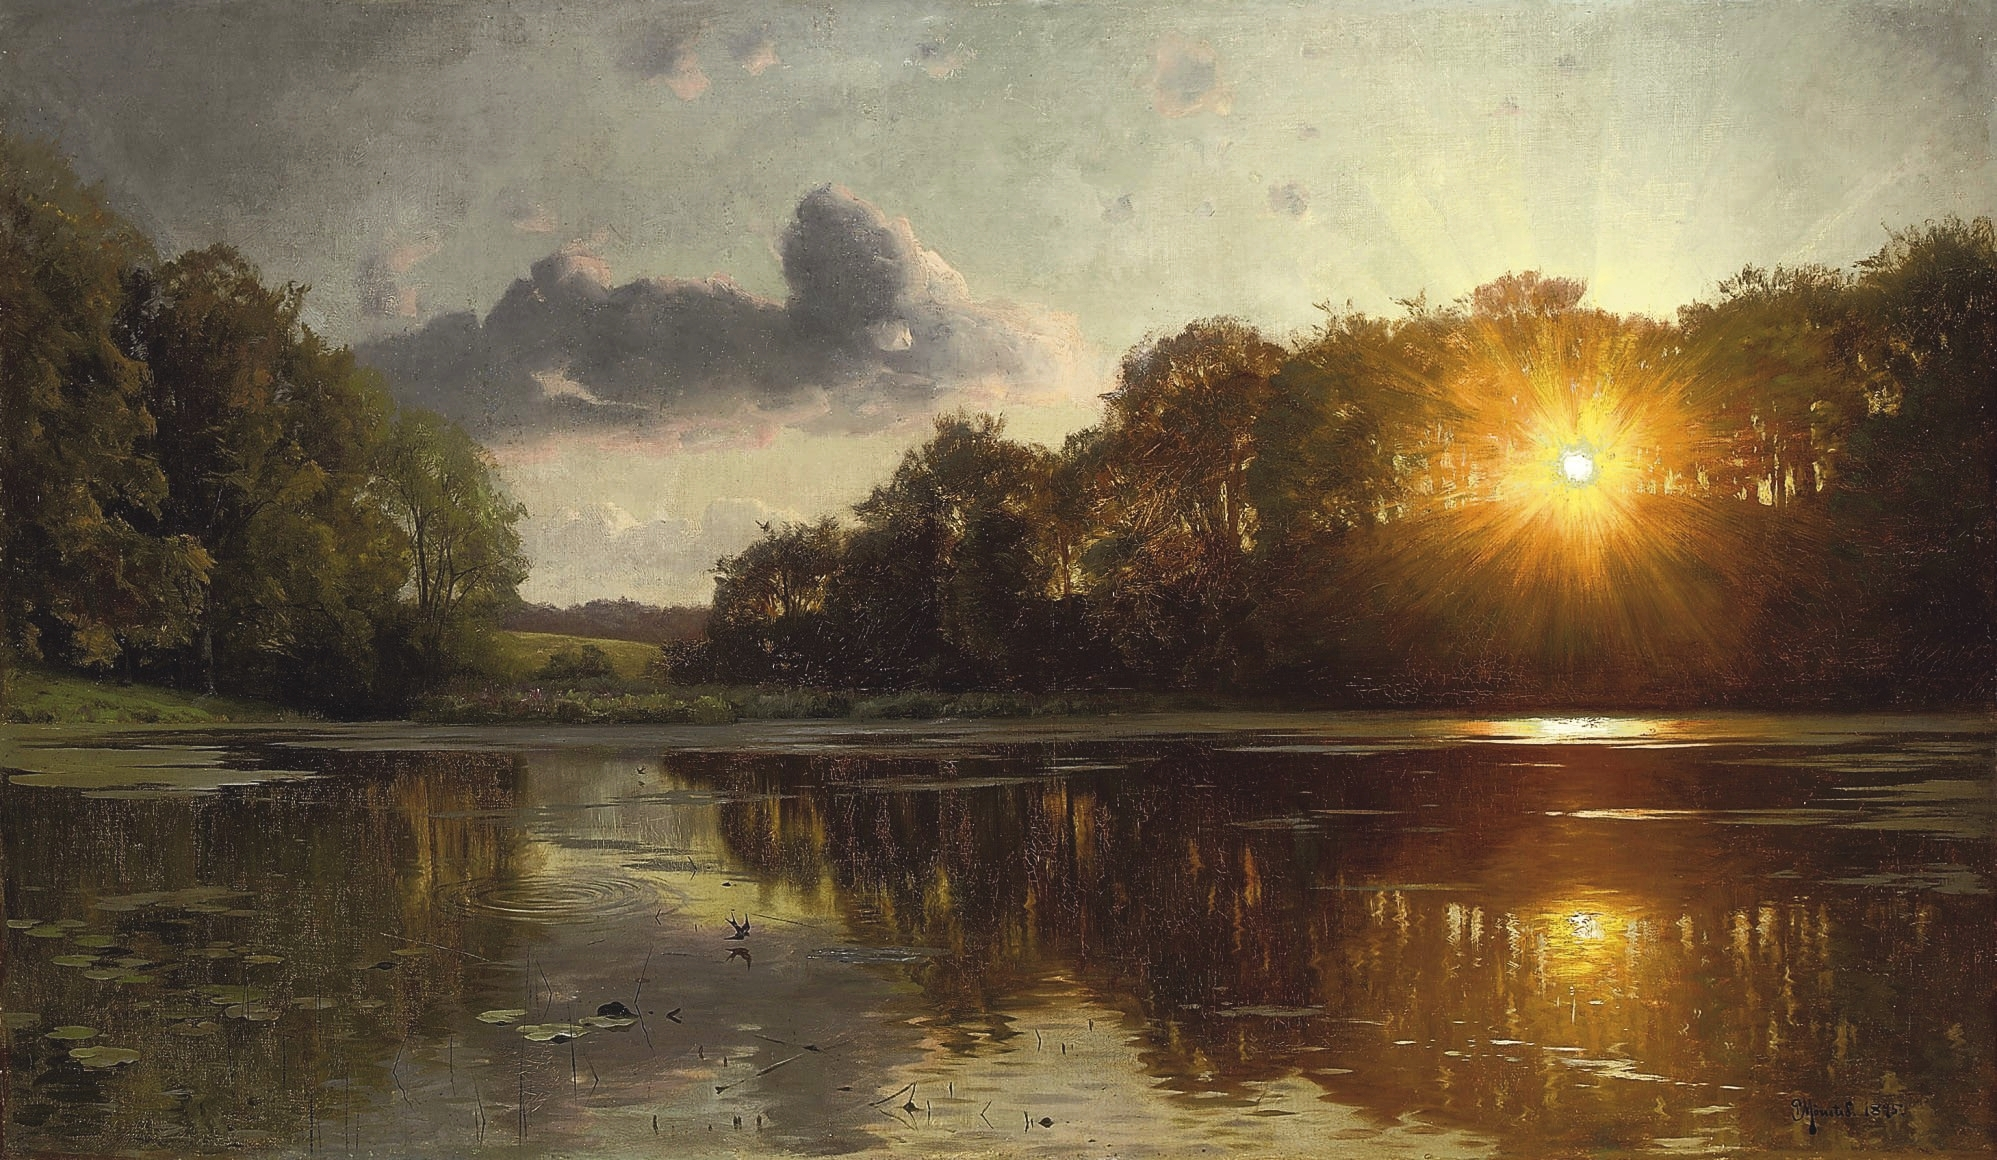 Peder_M%C3%B8nsted_-_Sunset_over_a_forest_lake.jpg